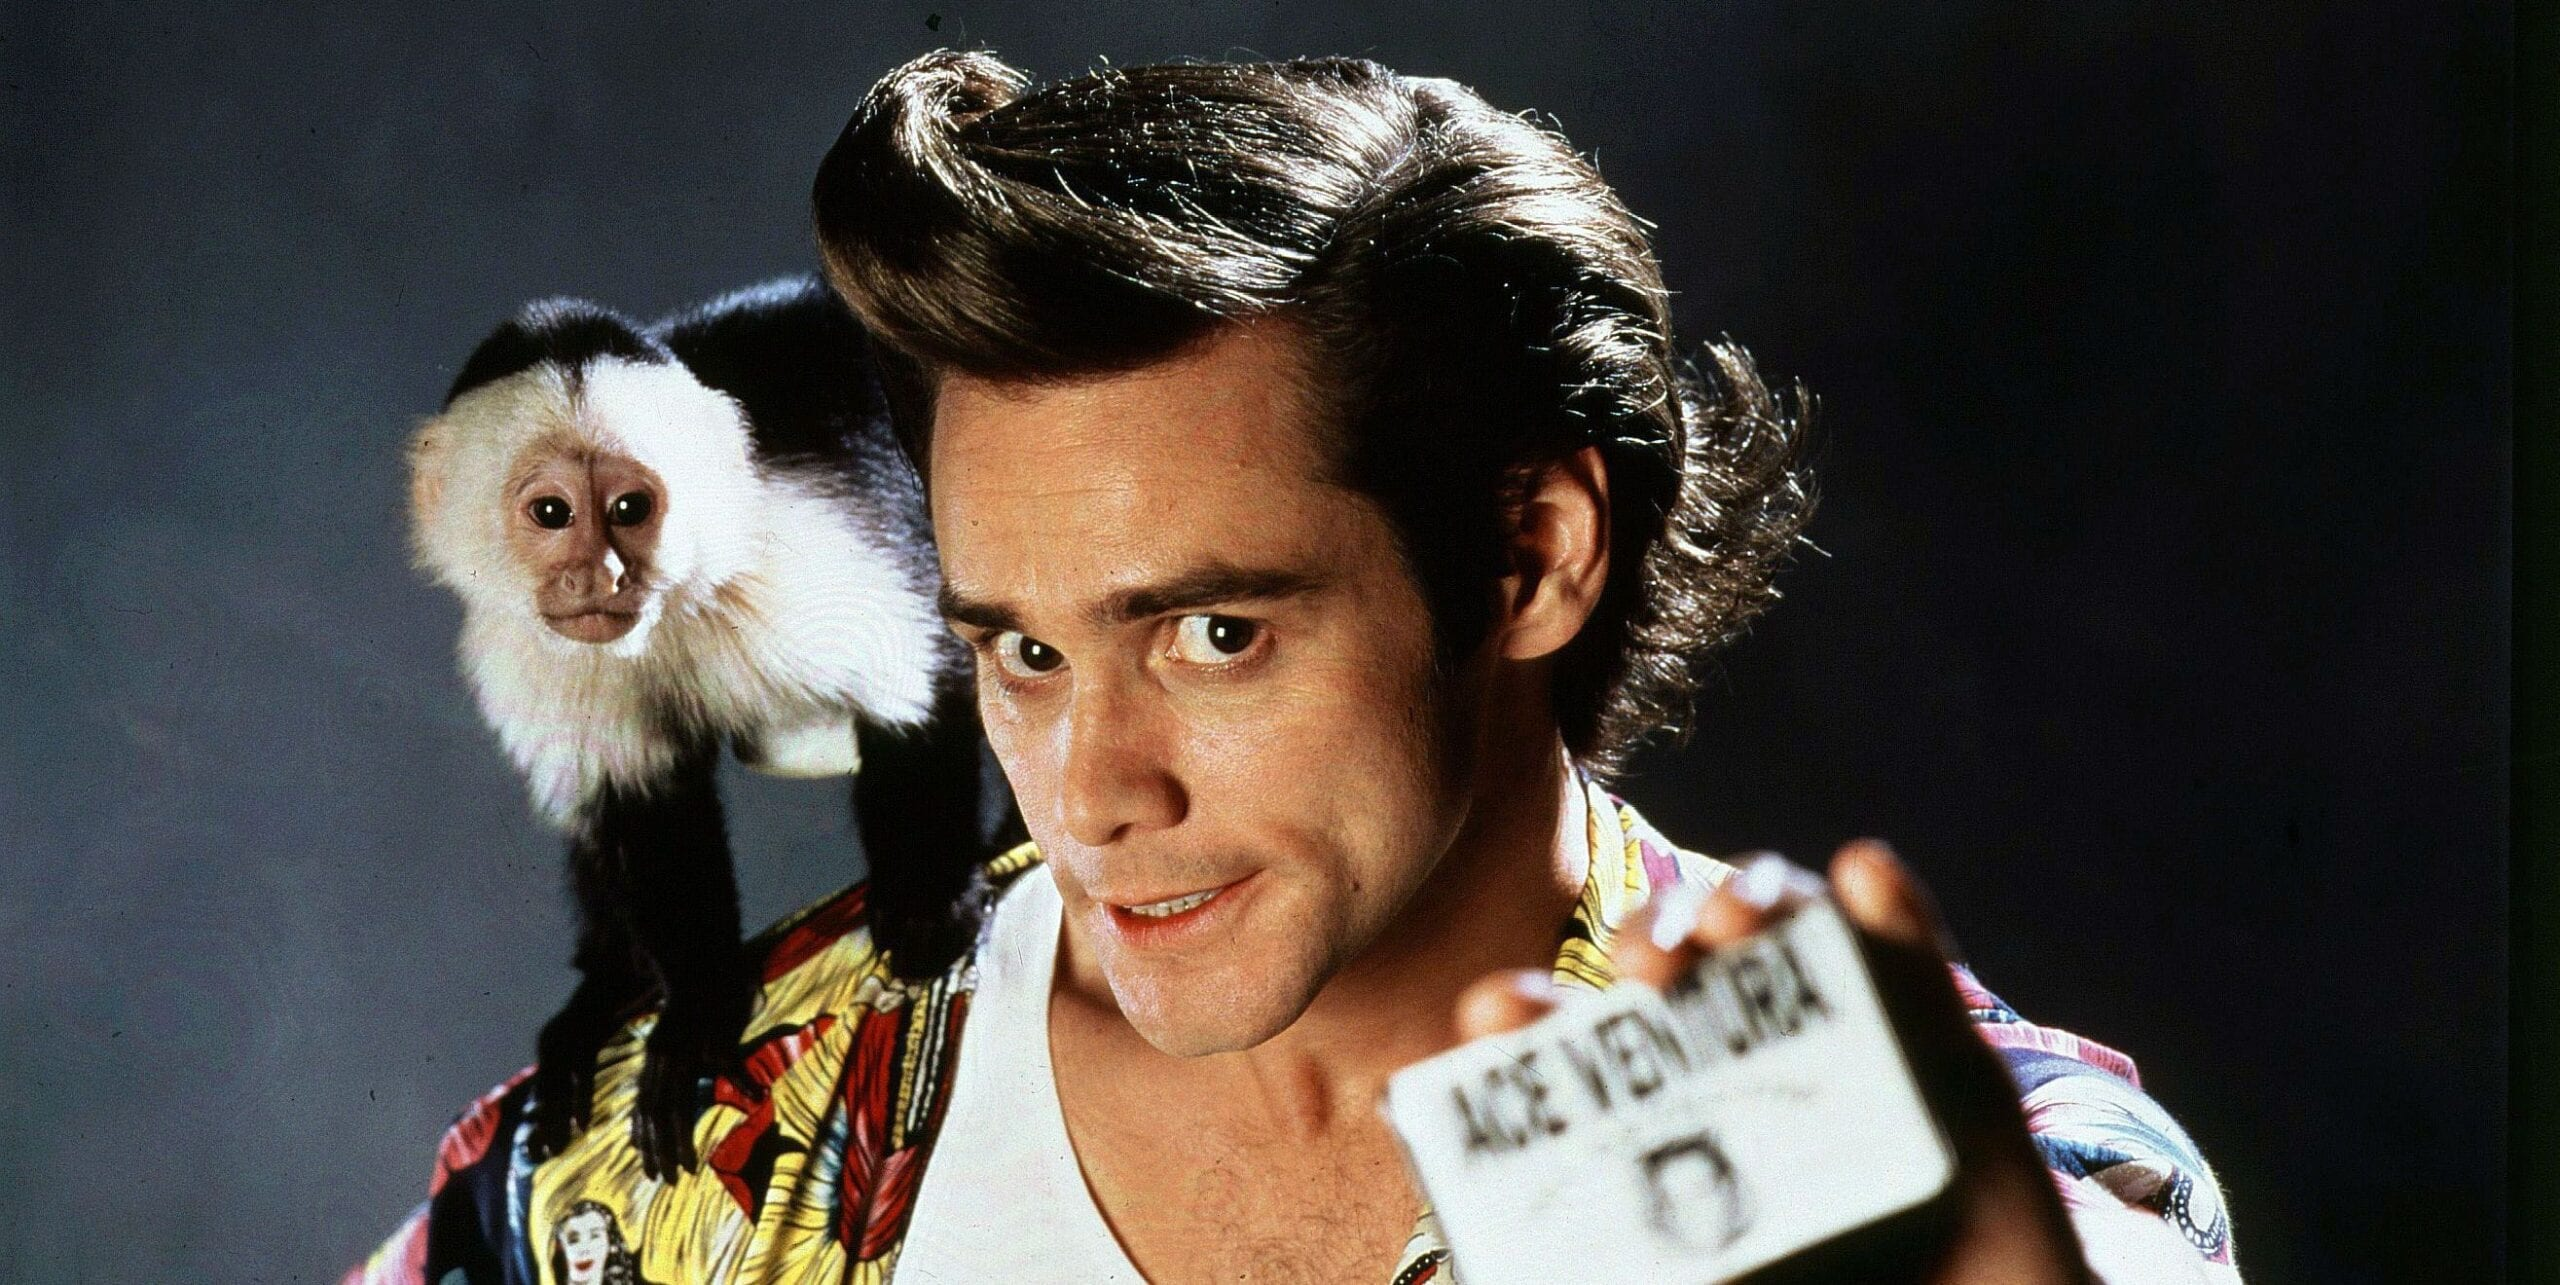 Ace Ventura 3 Announced, Sonic The Hedgehog Writers On Board